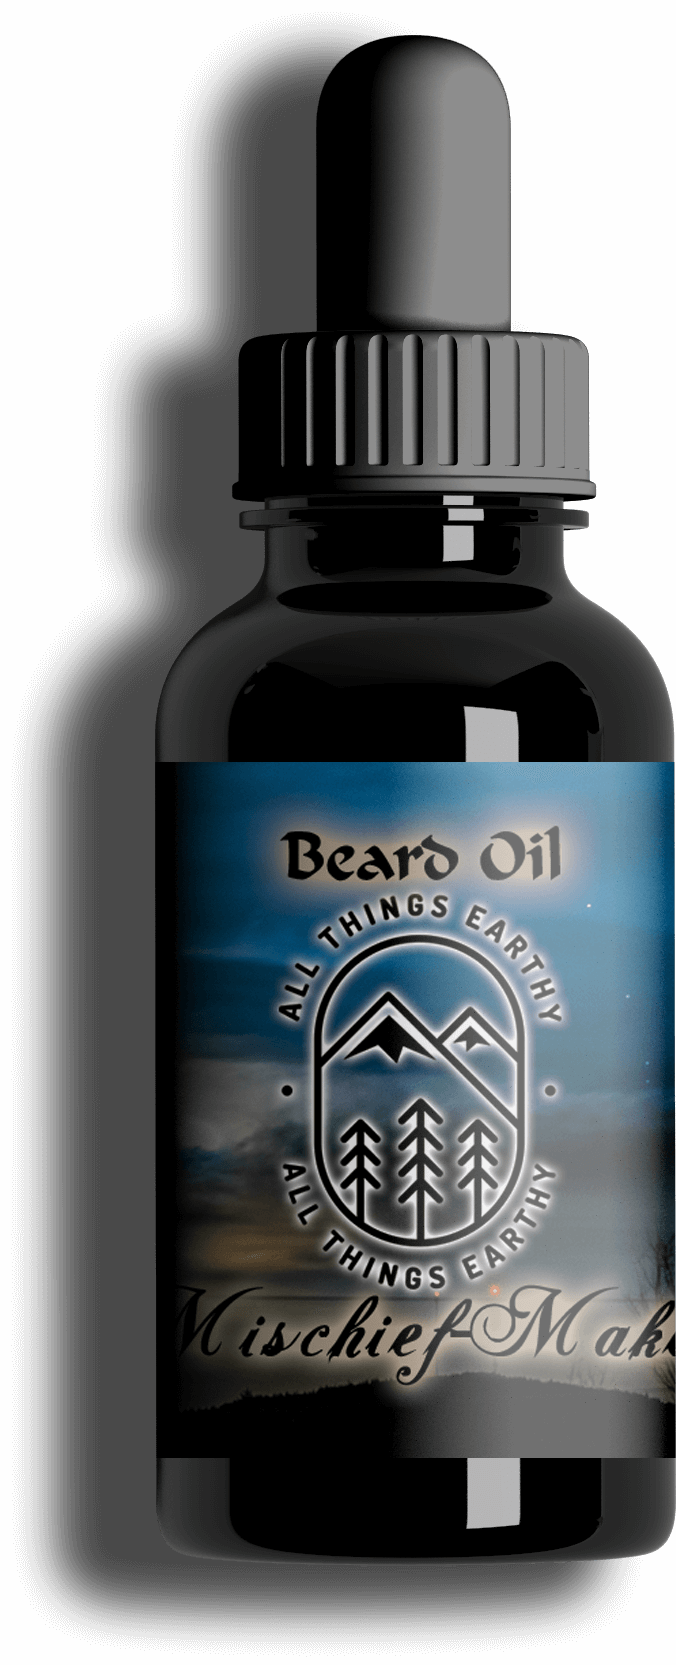 Mischief-Maker Premium Beard Oil 1oz - All Things Earthy